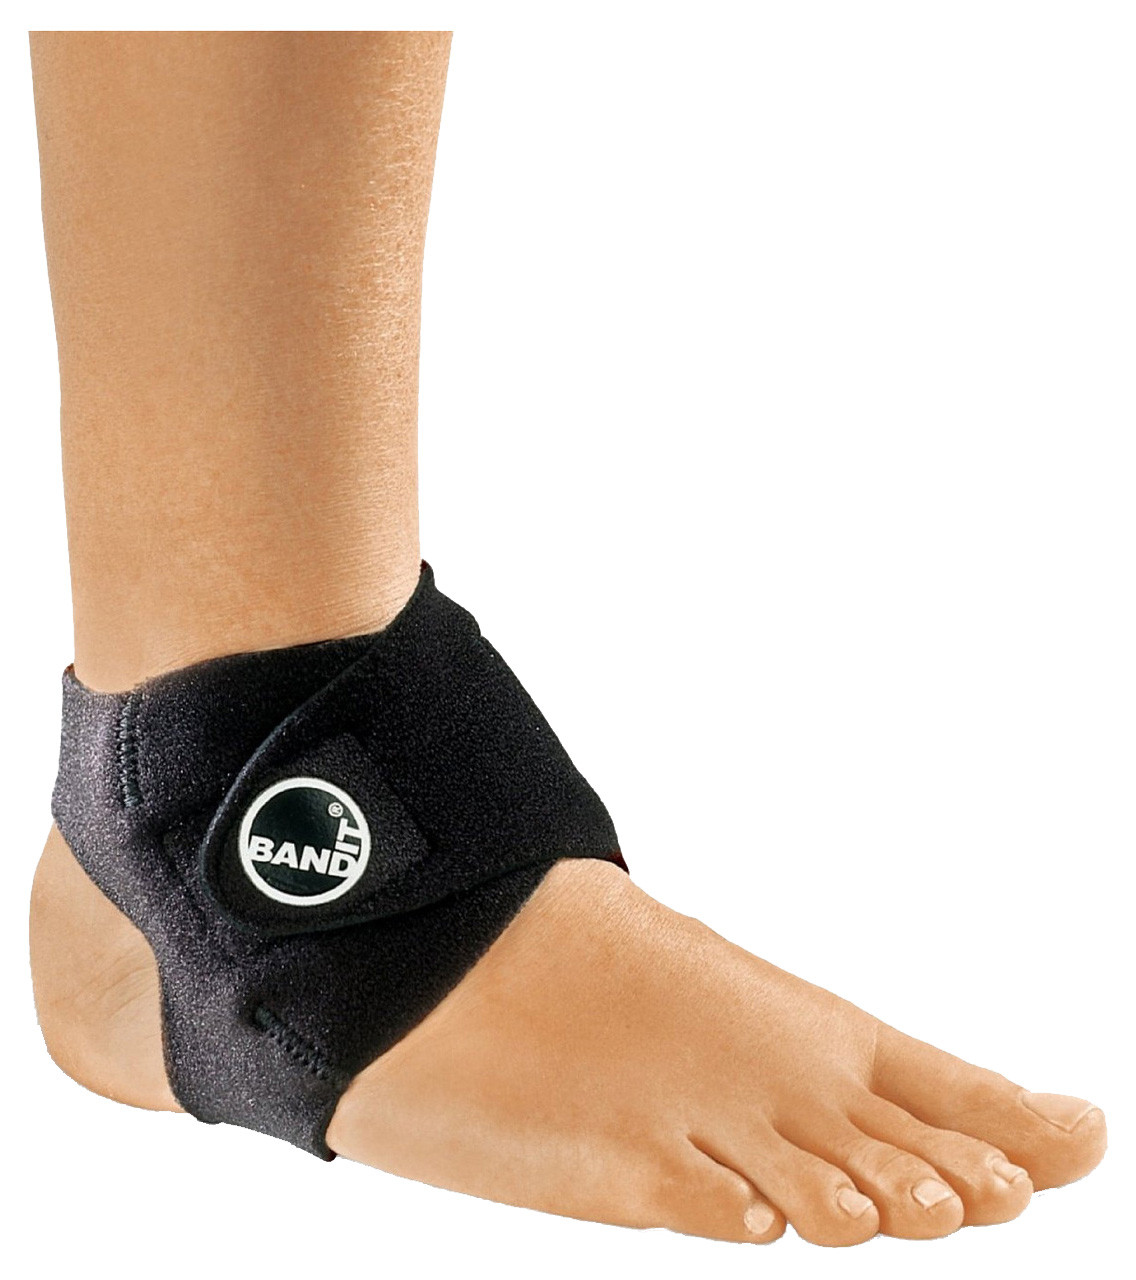 Exercise Bands Plantar Fasciitis: Ankle Band IT Plantar Fasciitis